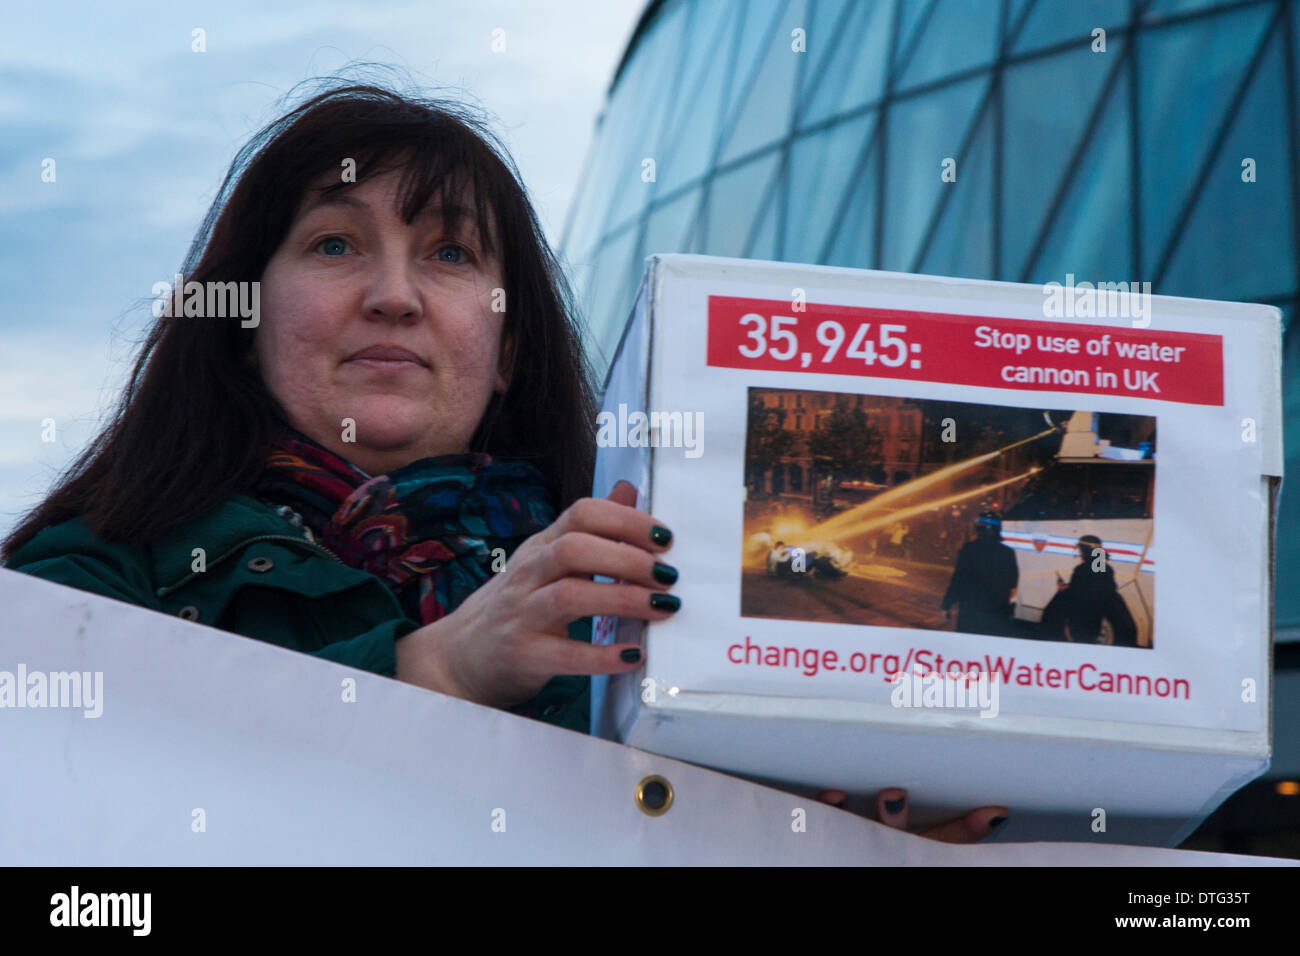 London, UK. 17th Feb 2014. . Jo Darrant prepares to present a 36,00-strong petition to City Hall as dozens gather to protest against Mayor Boris Johnson's plans to bring in water cannons to subdue street demonstrations. Credit:  Paul Davey/Alamy Live News - Stock Image